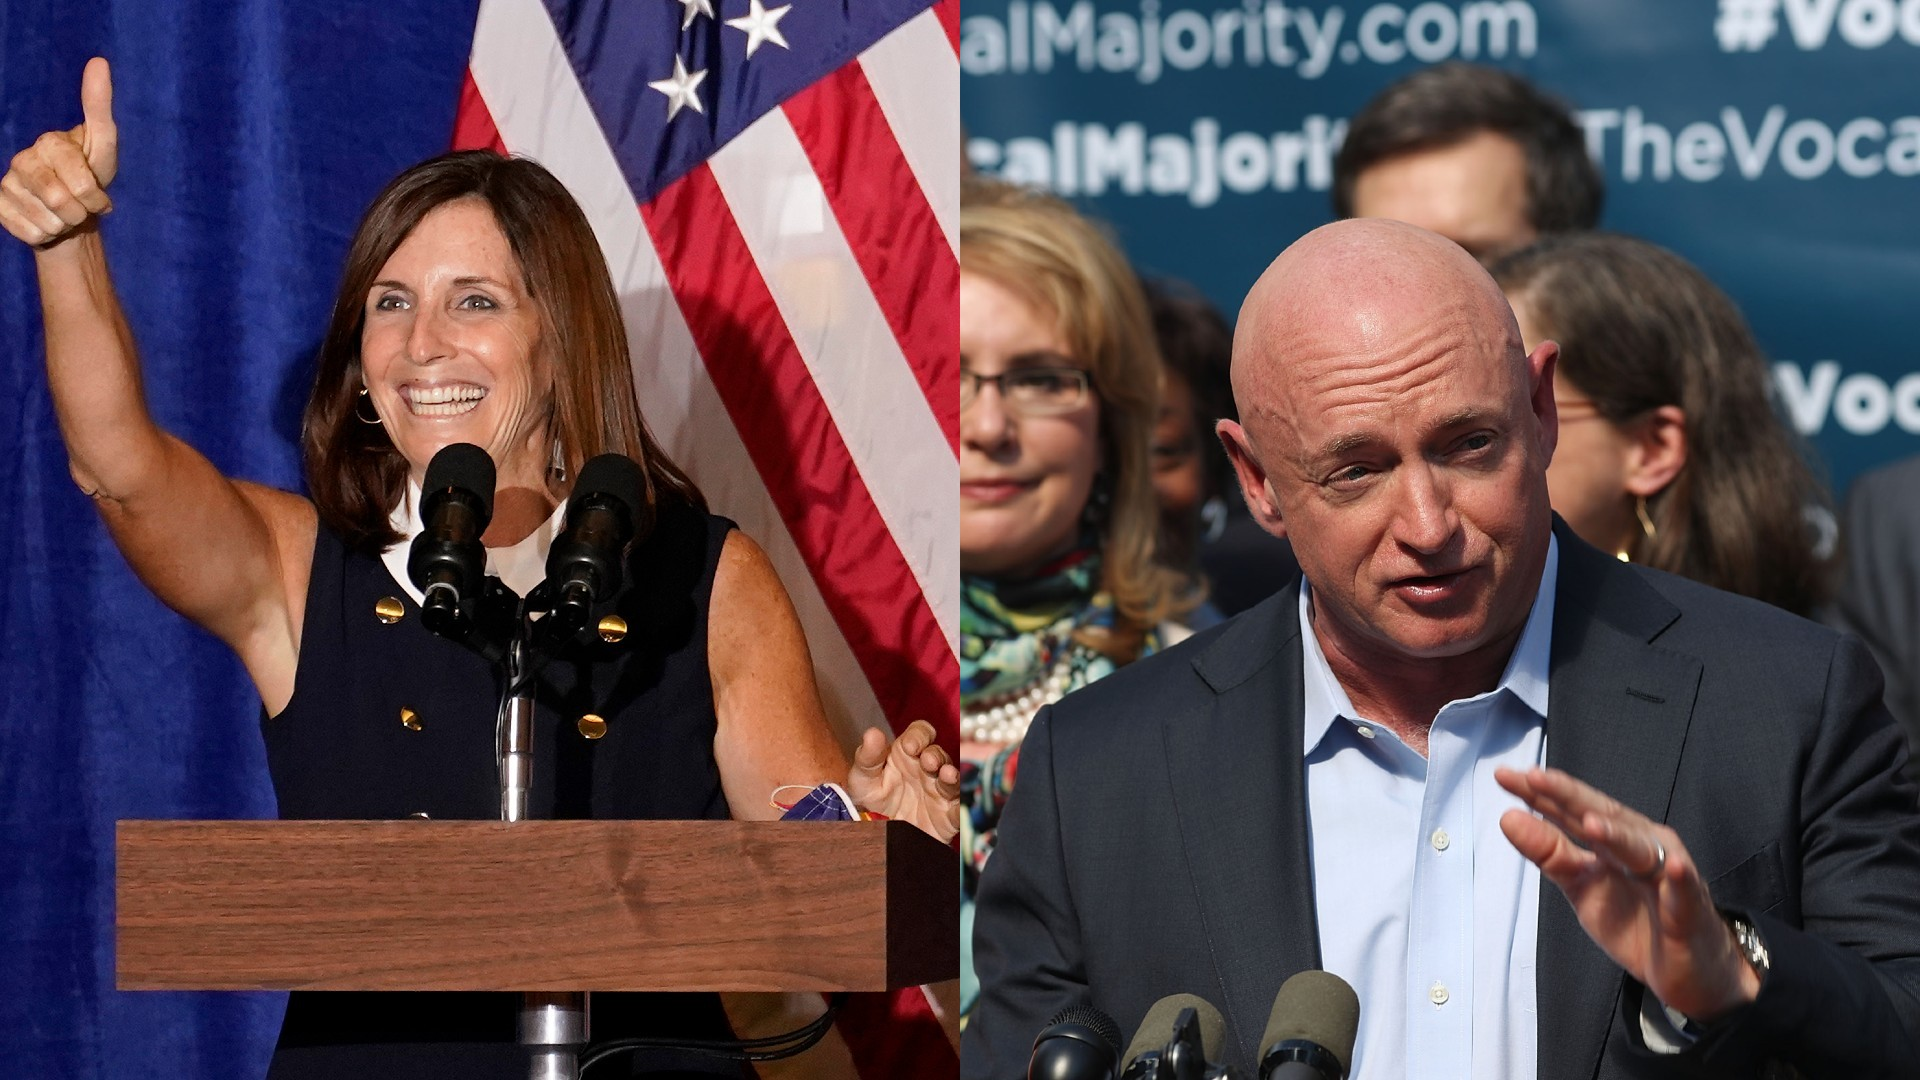 Left: Sen. Martha McSally, R-Ariz., speaks at a Veterans for Trump campaign rally, Friday, Sept. 18, 2020, in Litchfield Park, Ariz. (AP Photo/Matt York); Right: NASA astronaut Mark Kelly speaks at a 2016 Vocal Majority Tour on Oct. 17, 2016, in New York City. (Spencer Platt/Getty Images)